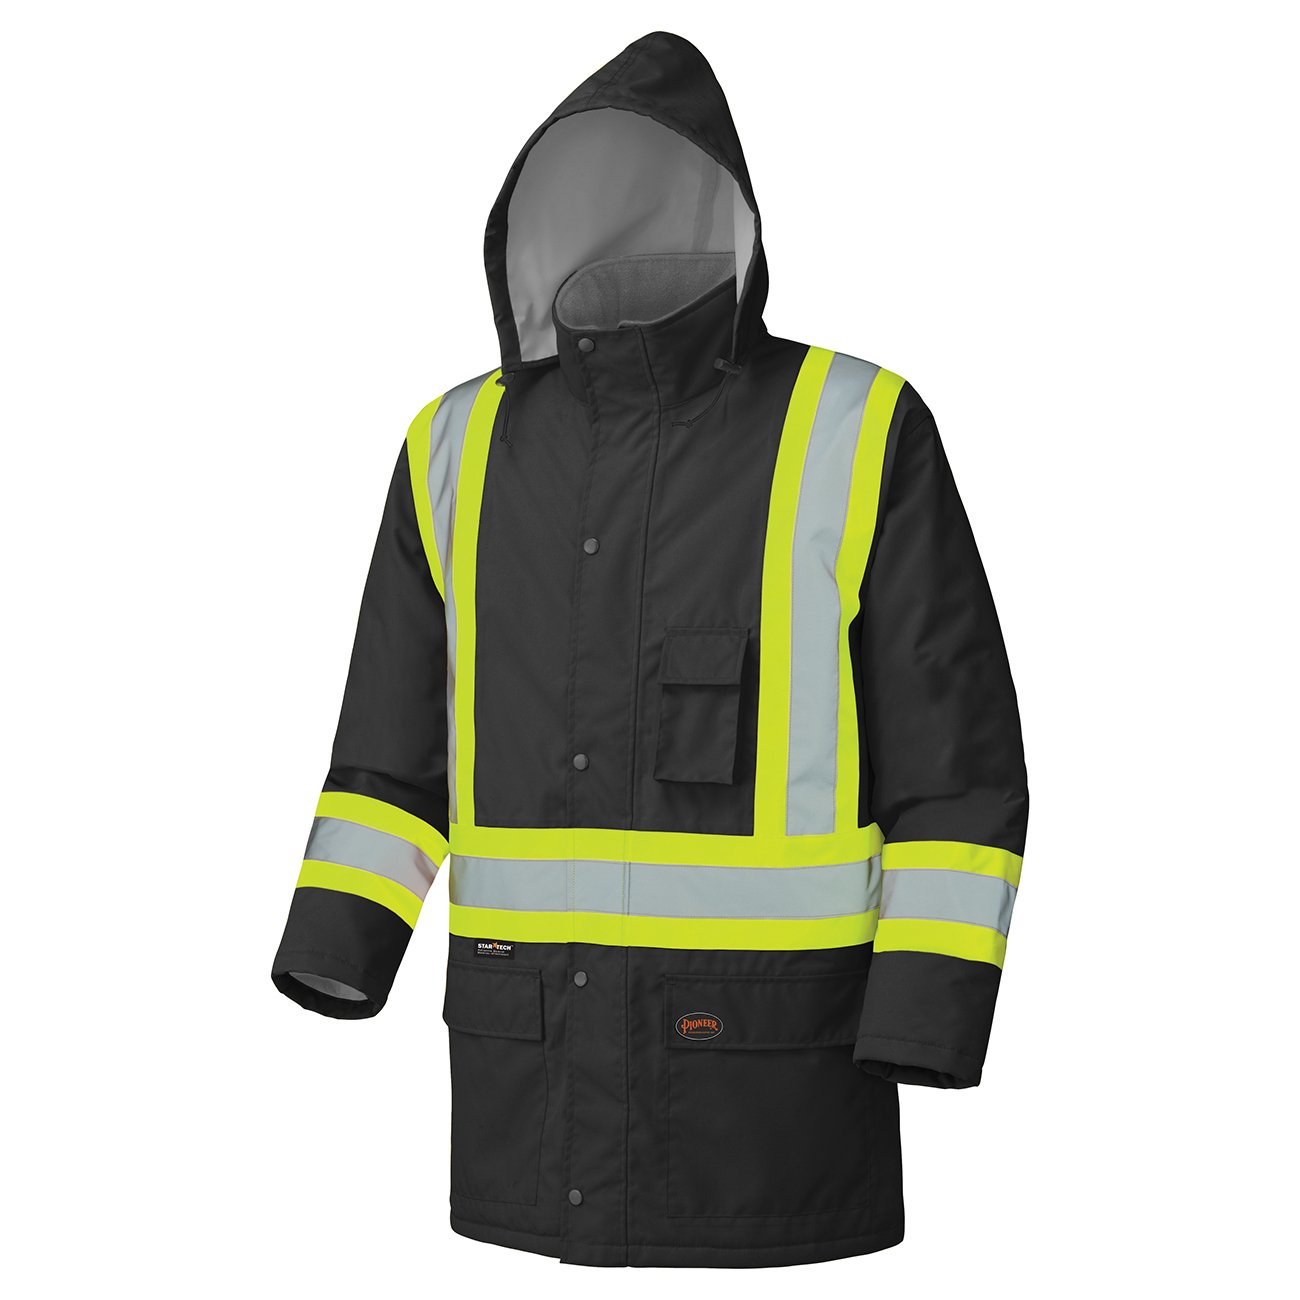 Pioneer Waterproof CSA High-Visibility Winter Safety Parka, 28º C Insulation, Multi-Pockets & Lightweight, Black, 3XL, V1150170-3XL